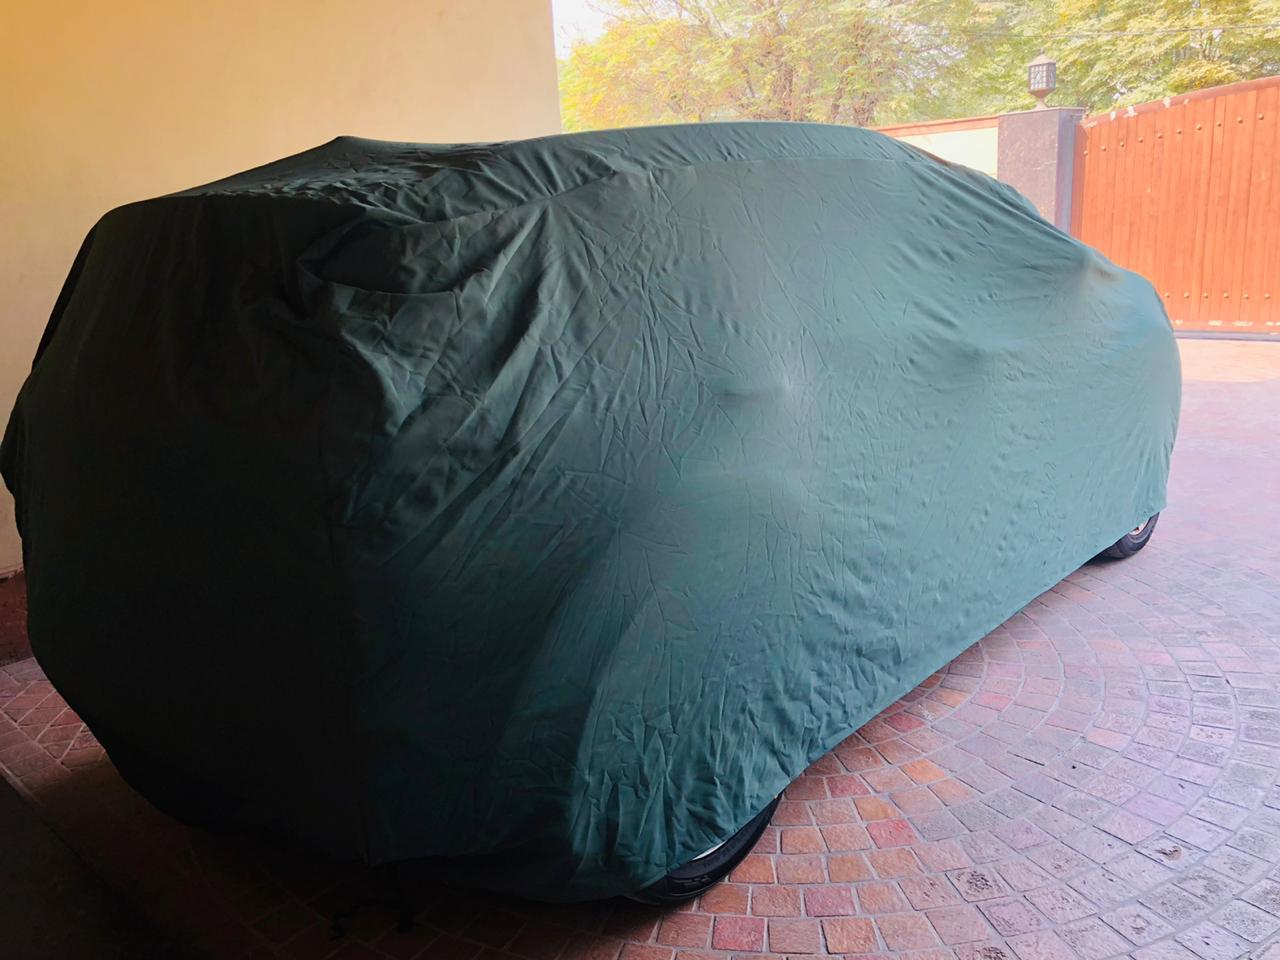 Toyota Celica Model 1993-1999 Parachute Car Top Cover